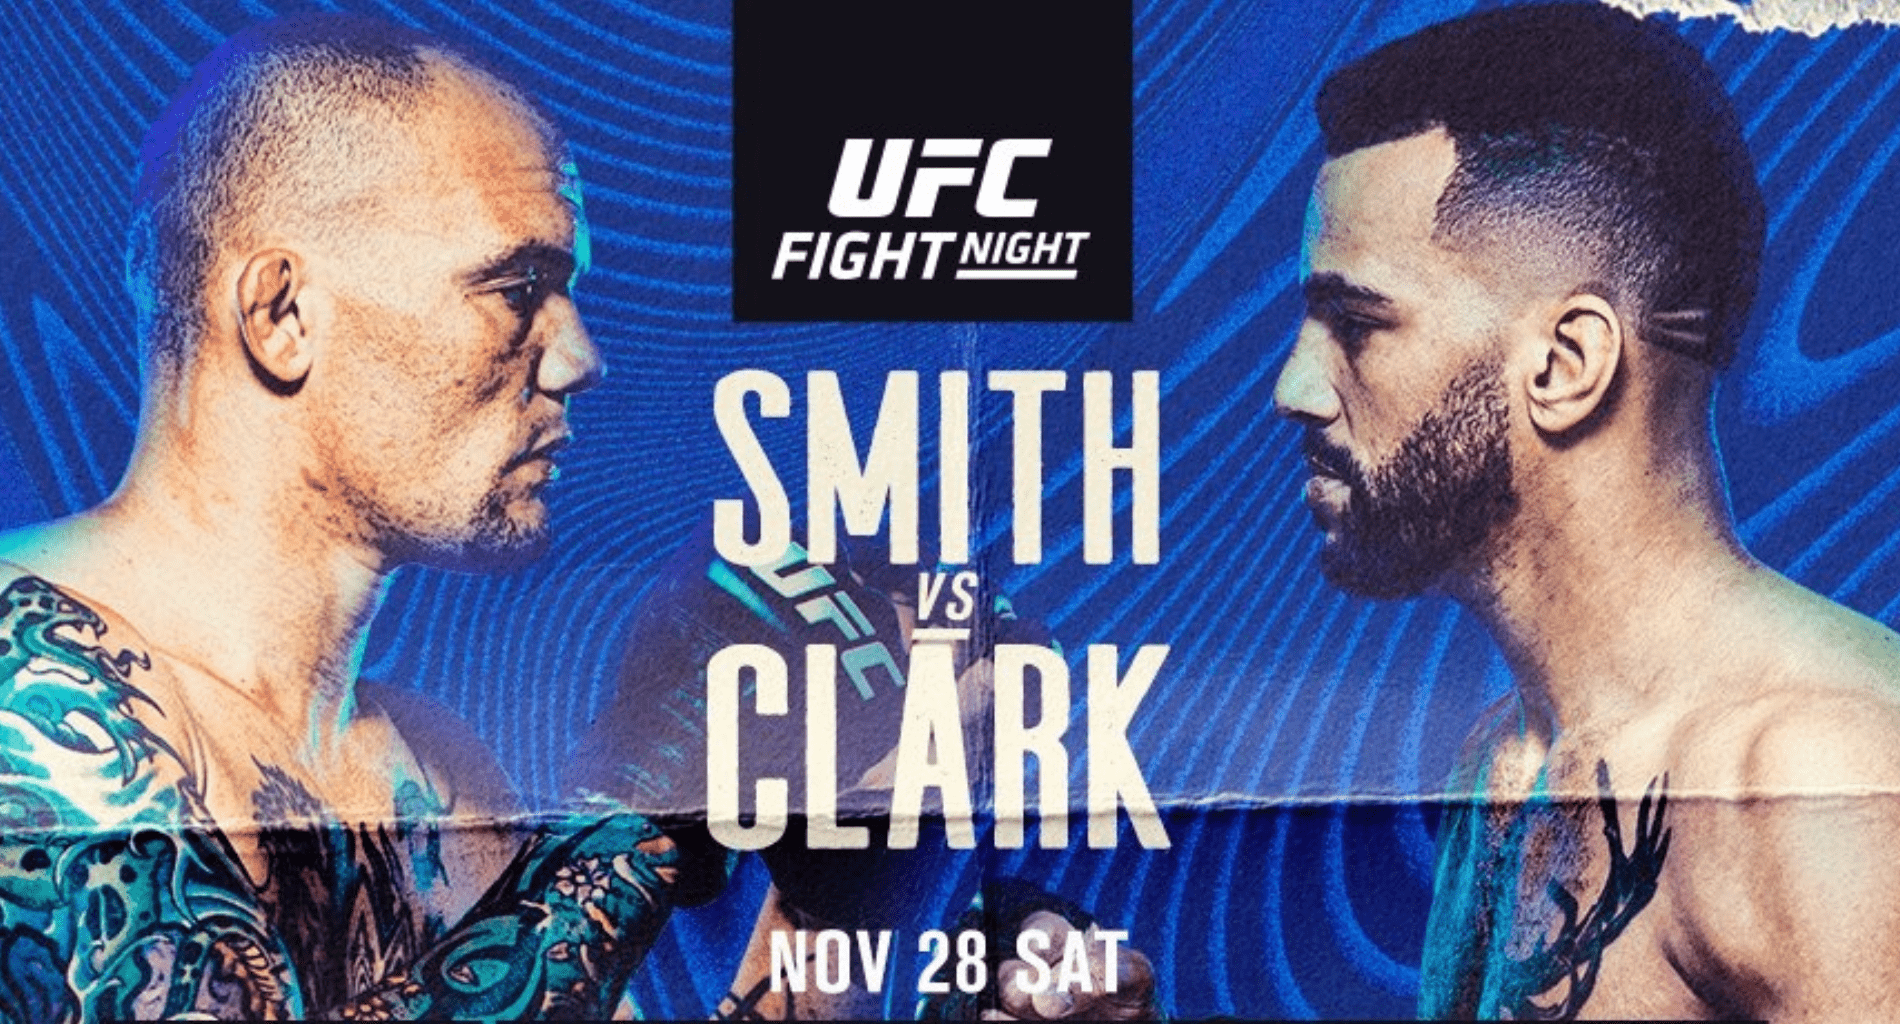 UFC Vegas 15: Smith vs Clark Results And Post Fight Videos